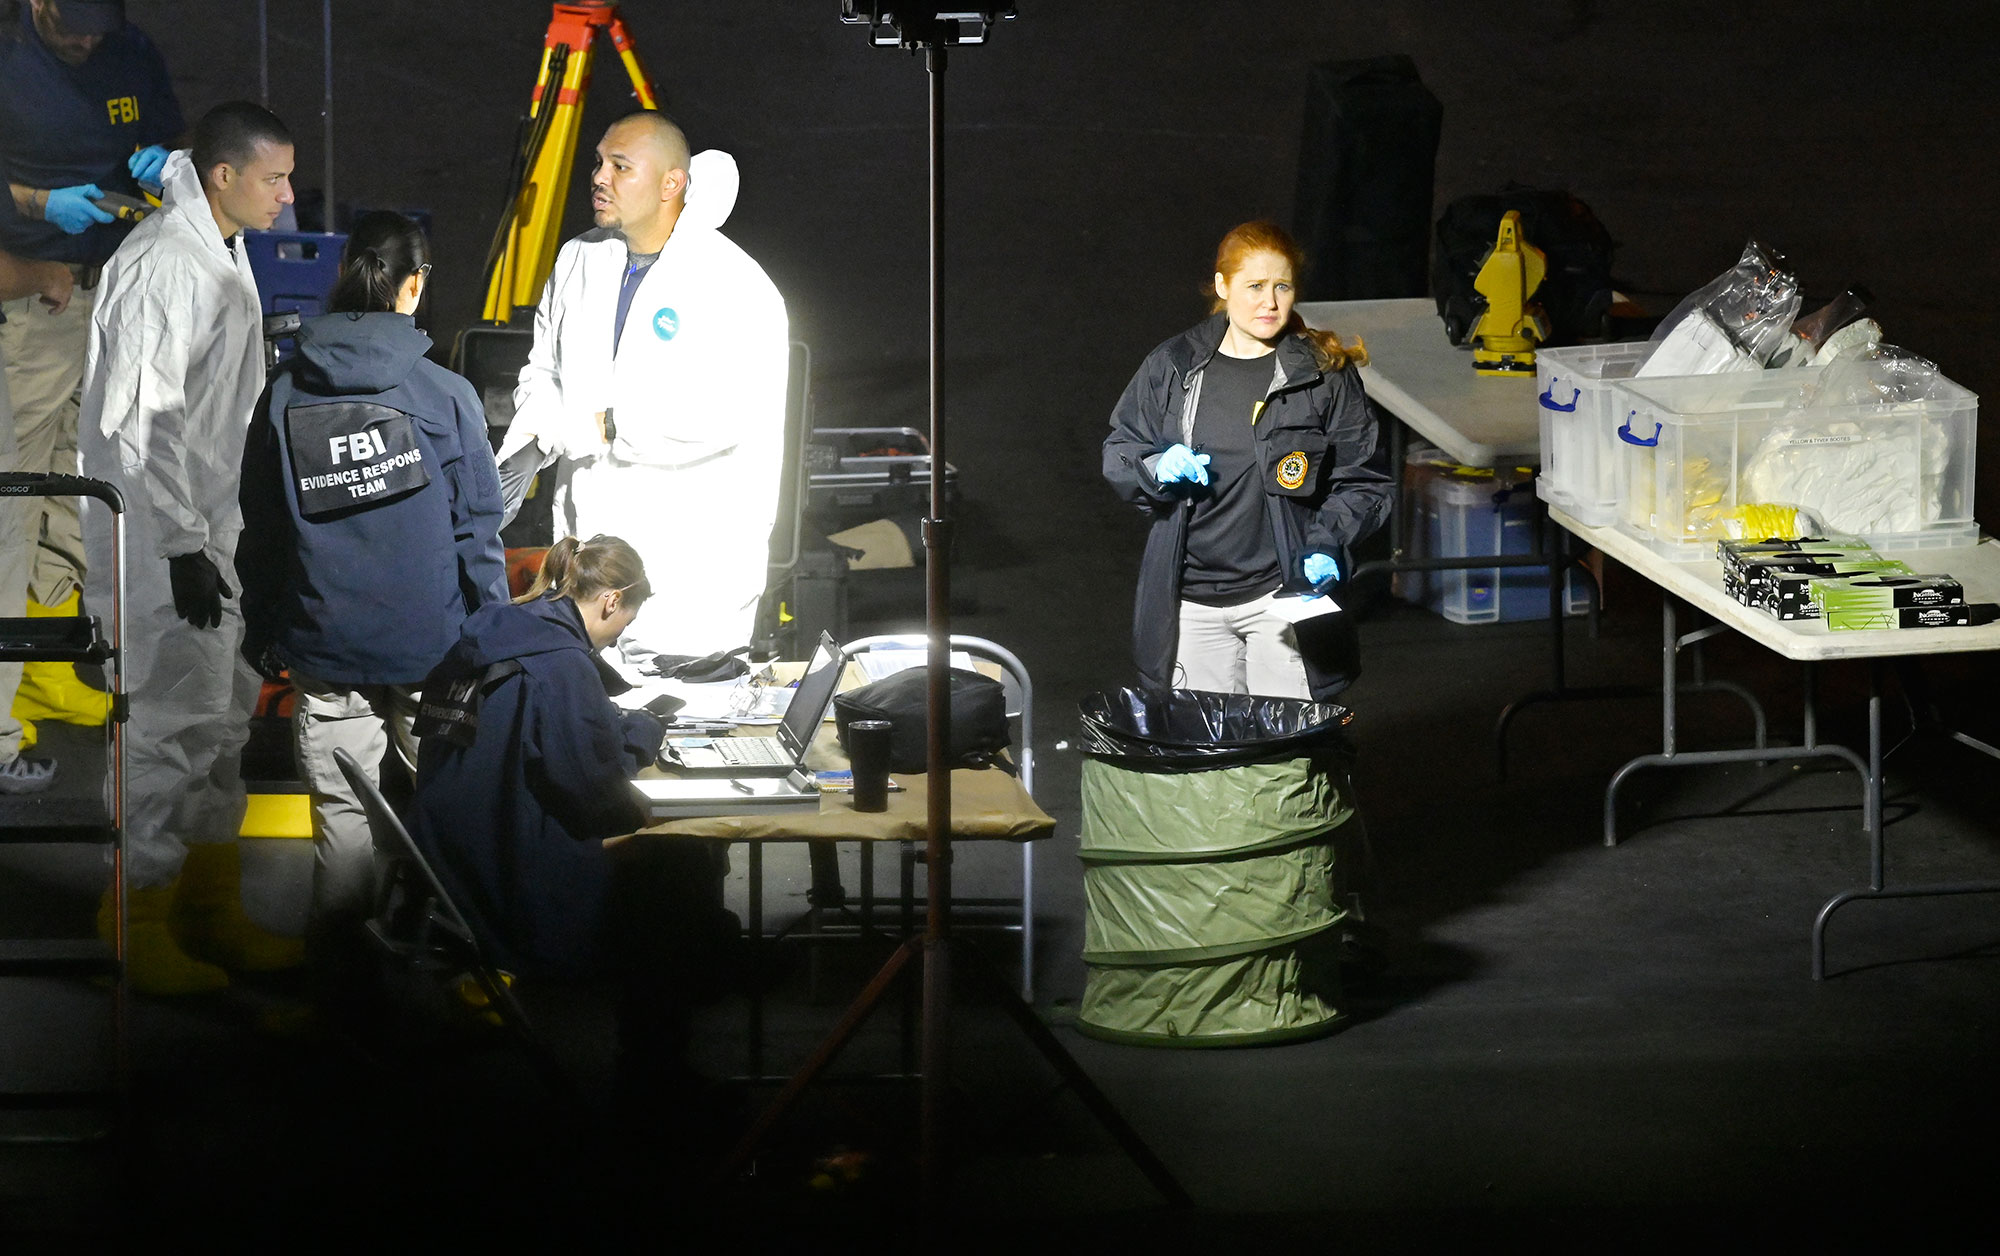 <div class='meta'><div class='origin-logo' data-origin='none'></div><span class='caption-text' data-credit='Mark J. Terrill/AP Photo'>A forensics team gets ready work the scene Thursday, Nov. 8, 2018, in Thousand Oaks, Calif.</span></div>